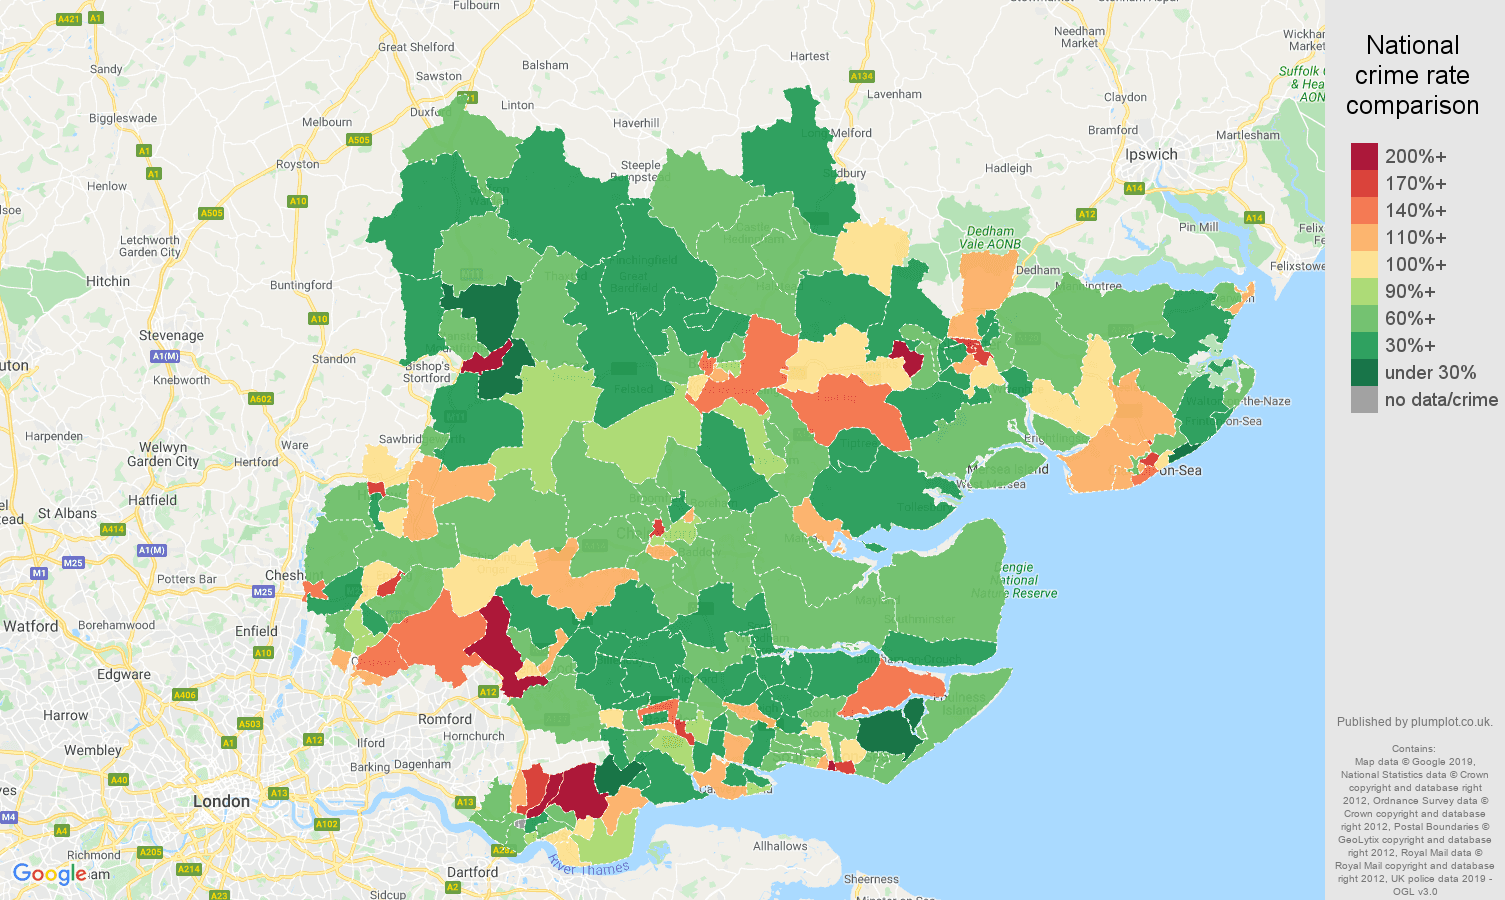 Essex other theft crime rate comparison map